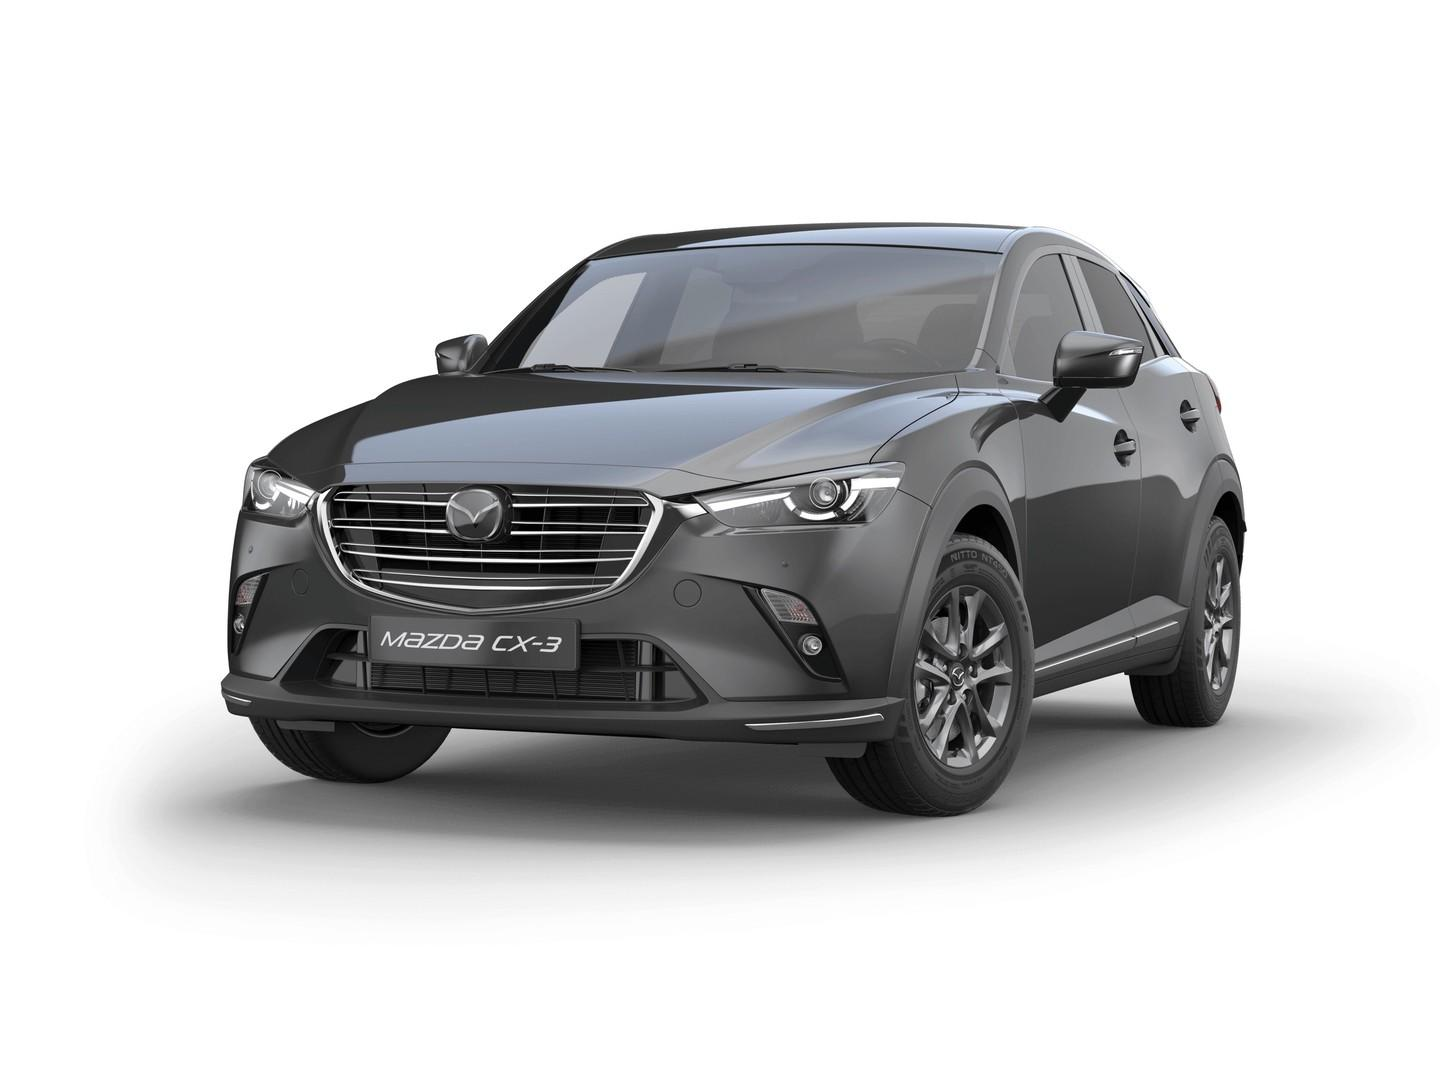 Mazda Cx-3 Sport selected suv